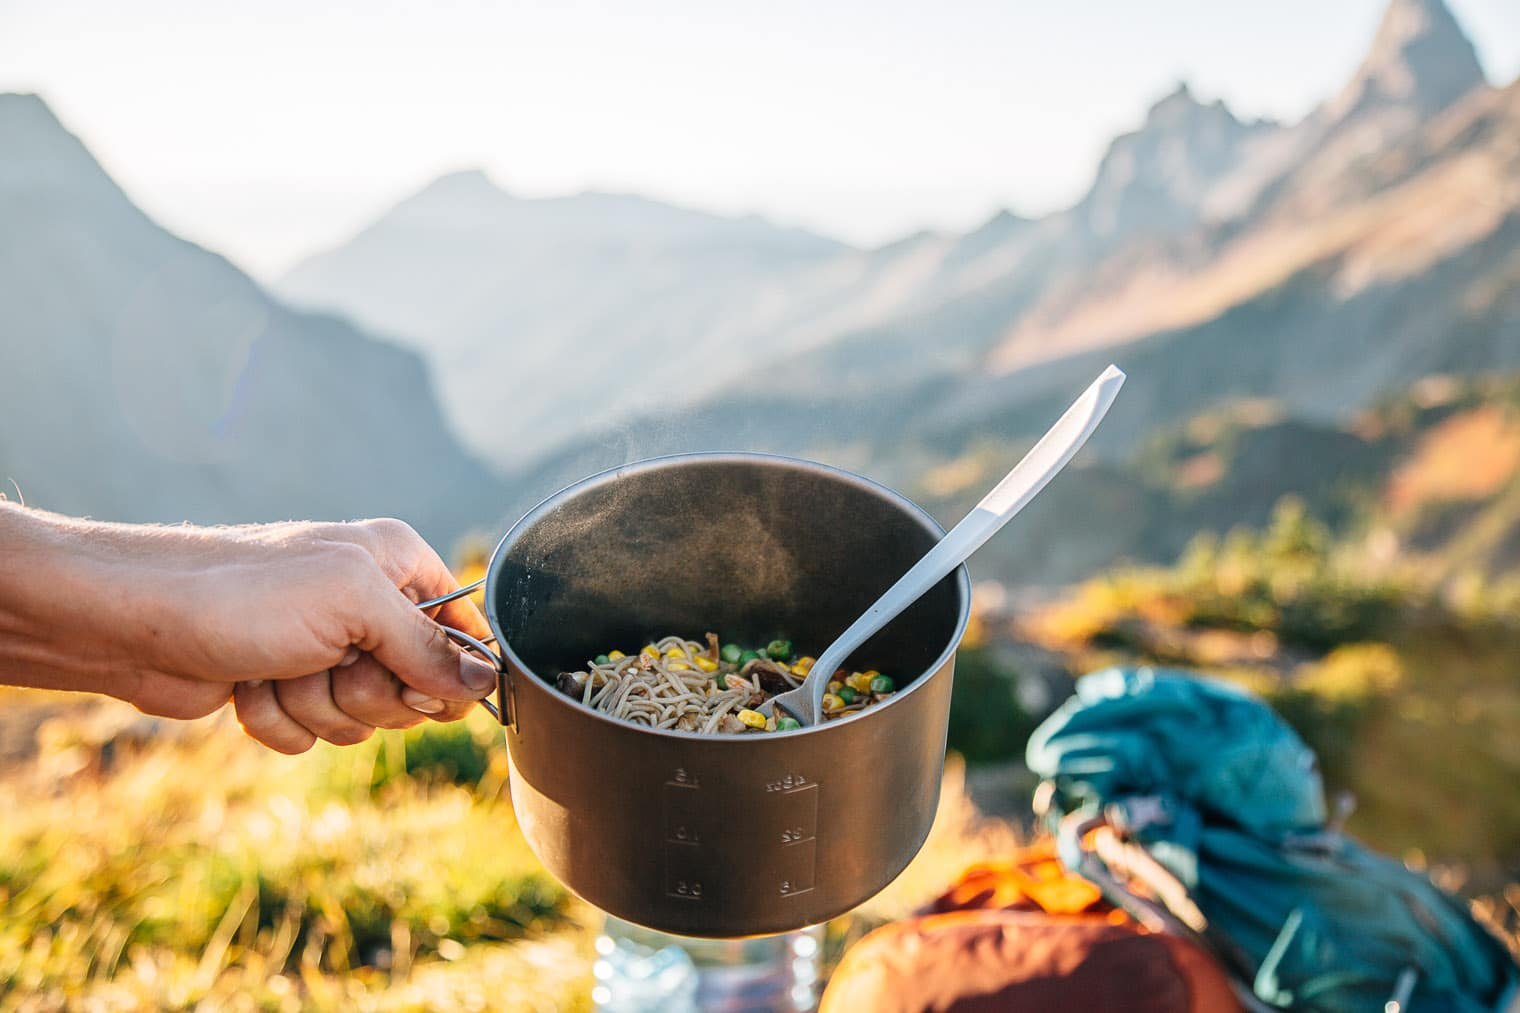 Ditch the Top Ramen on your next backpacking trip - this homemade soba noodle ramen is healthier, more nutritious, and loaded with protein.